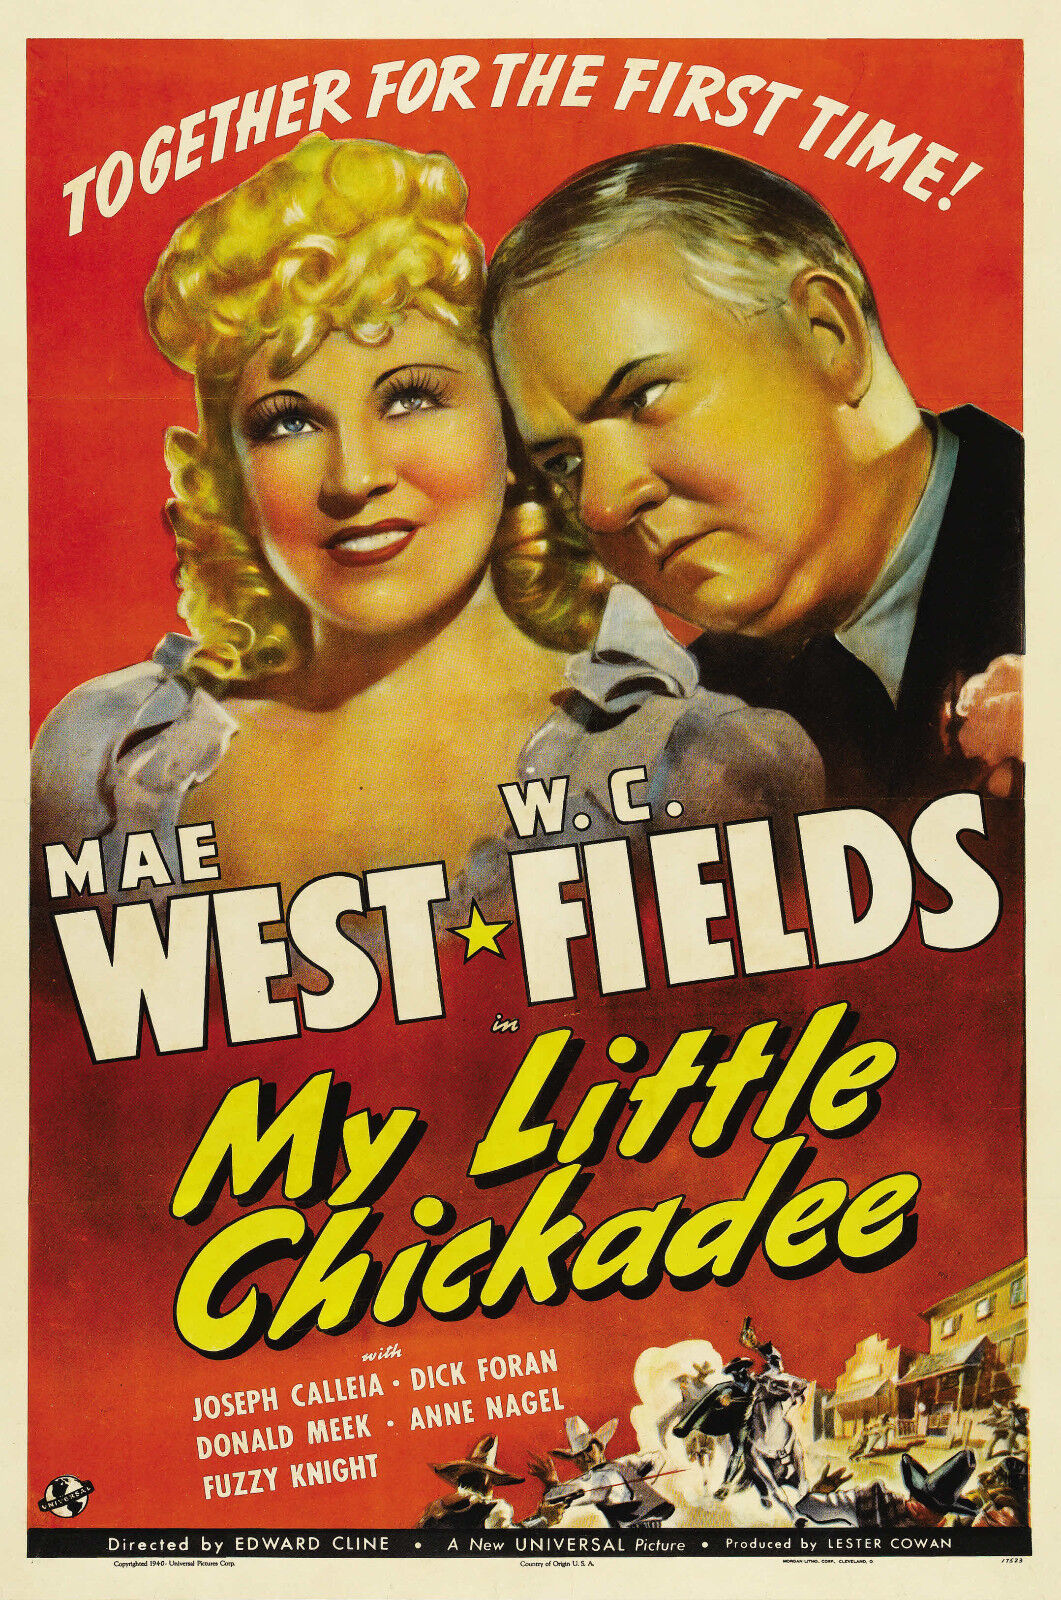 """16mm """"MY LITTLE CHICKADEE"""" FEATURE (1940) W.C. FIELDS AND MAE WEST - CLASSIC"""